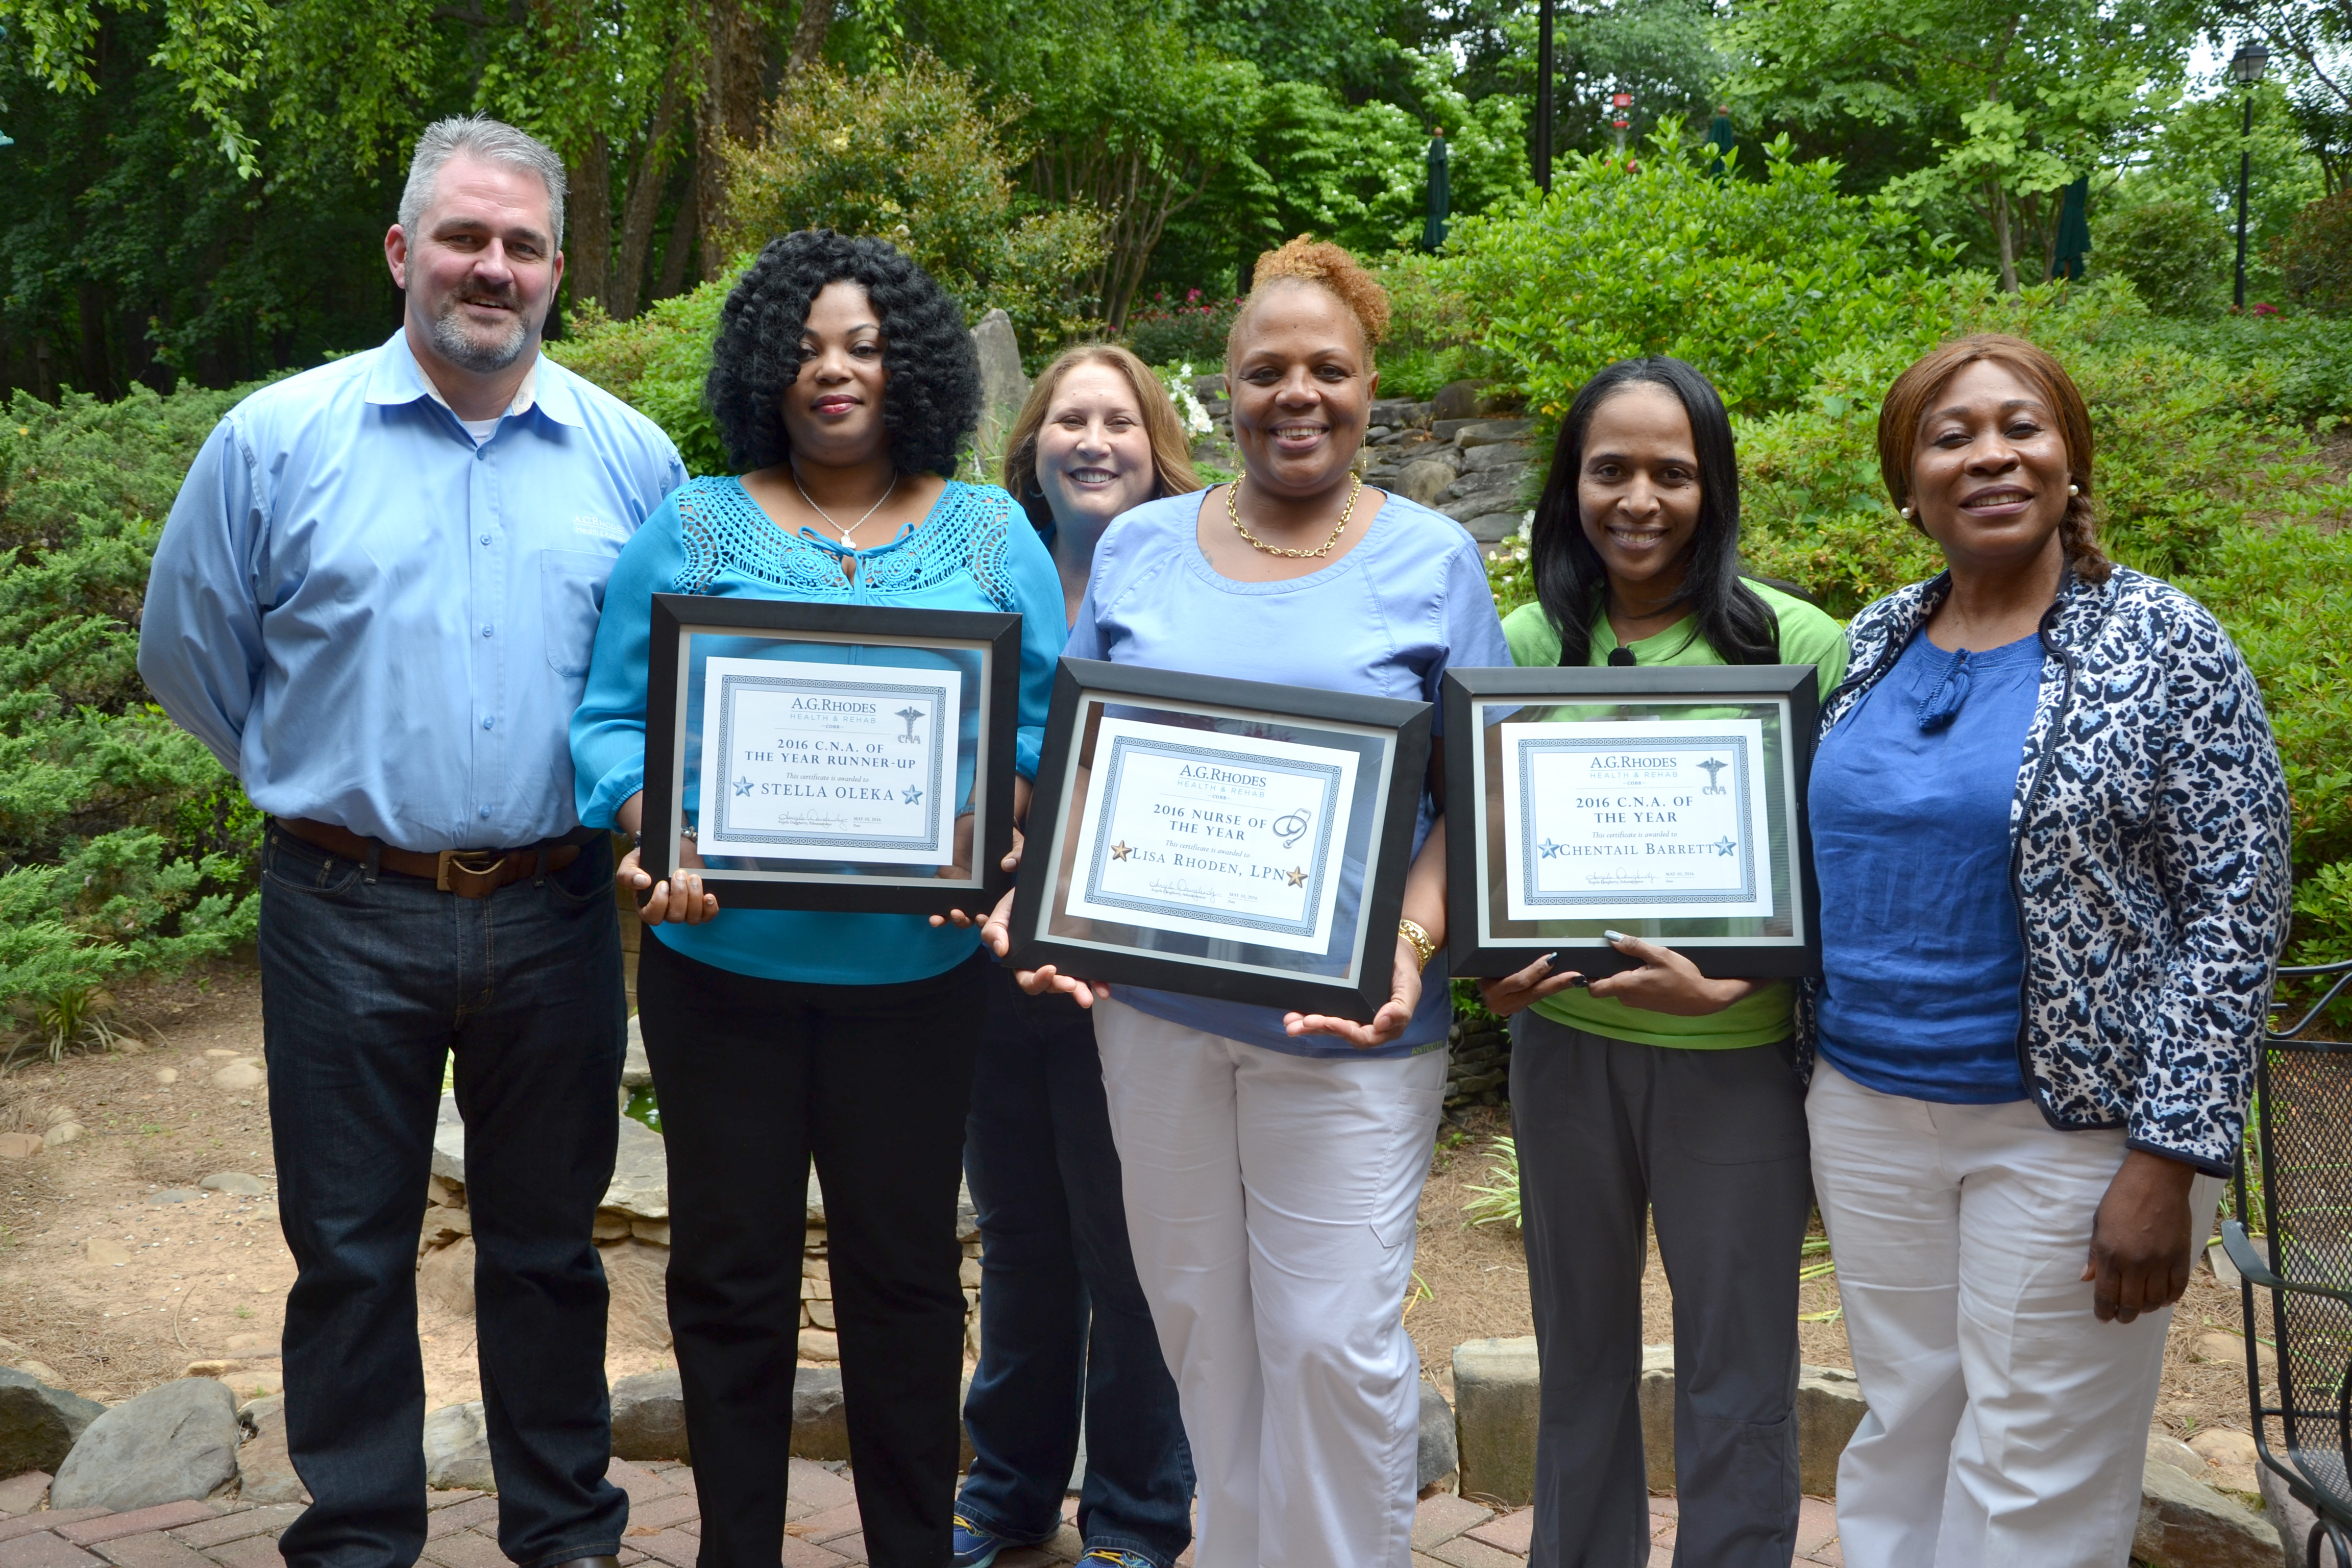 May 12, 2016 Exceptional Staff Honored During Nursing Home Week